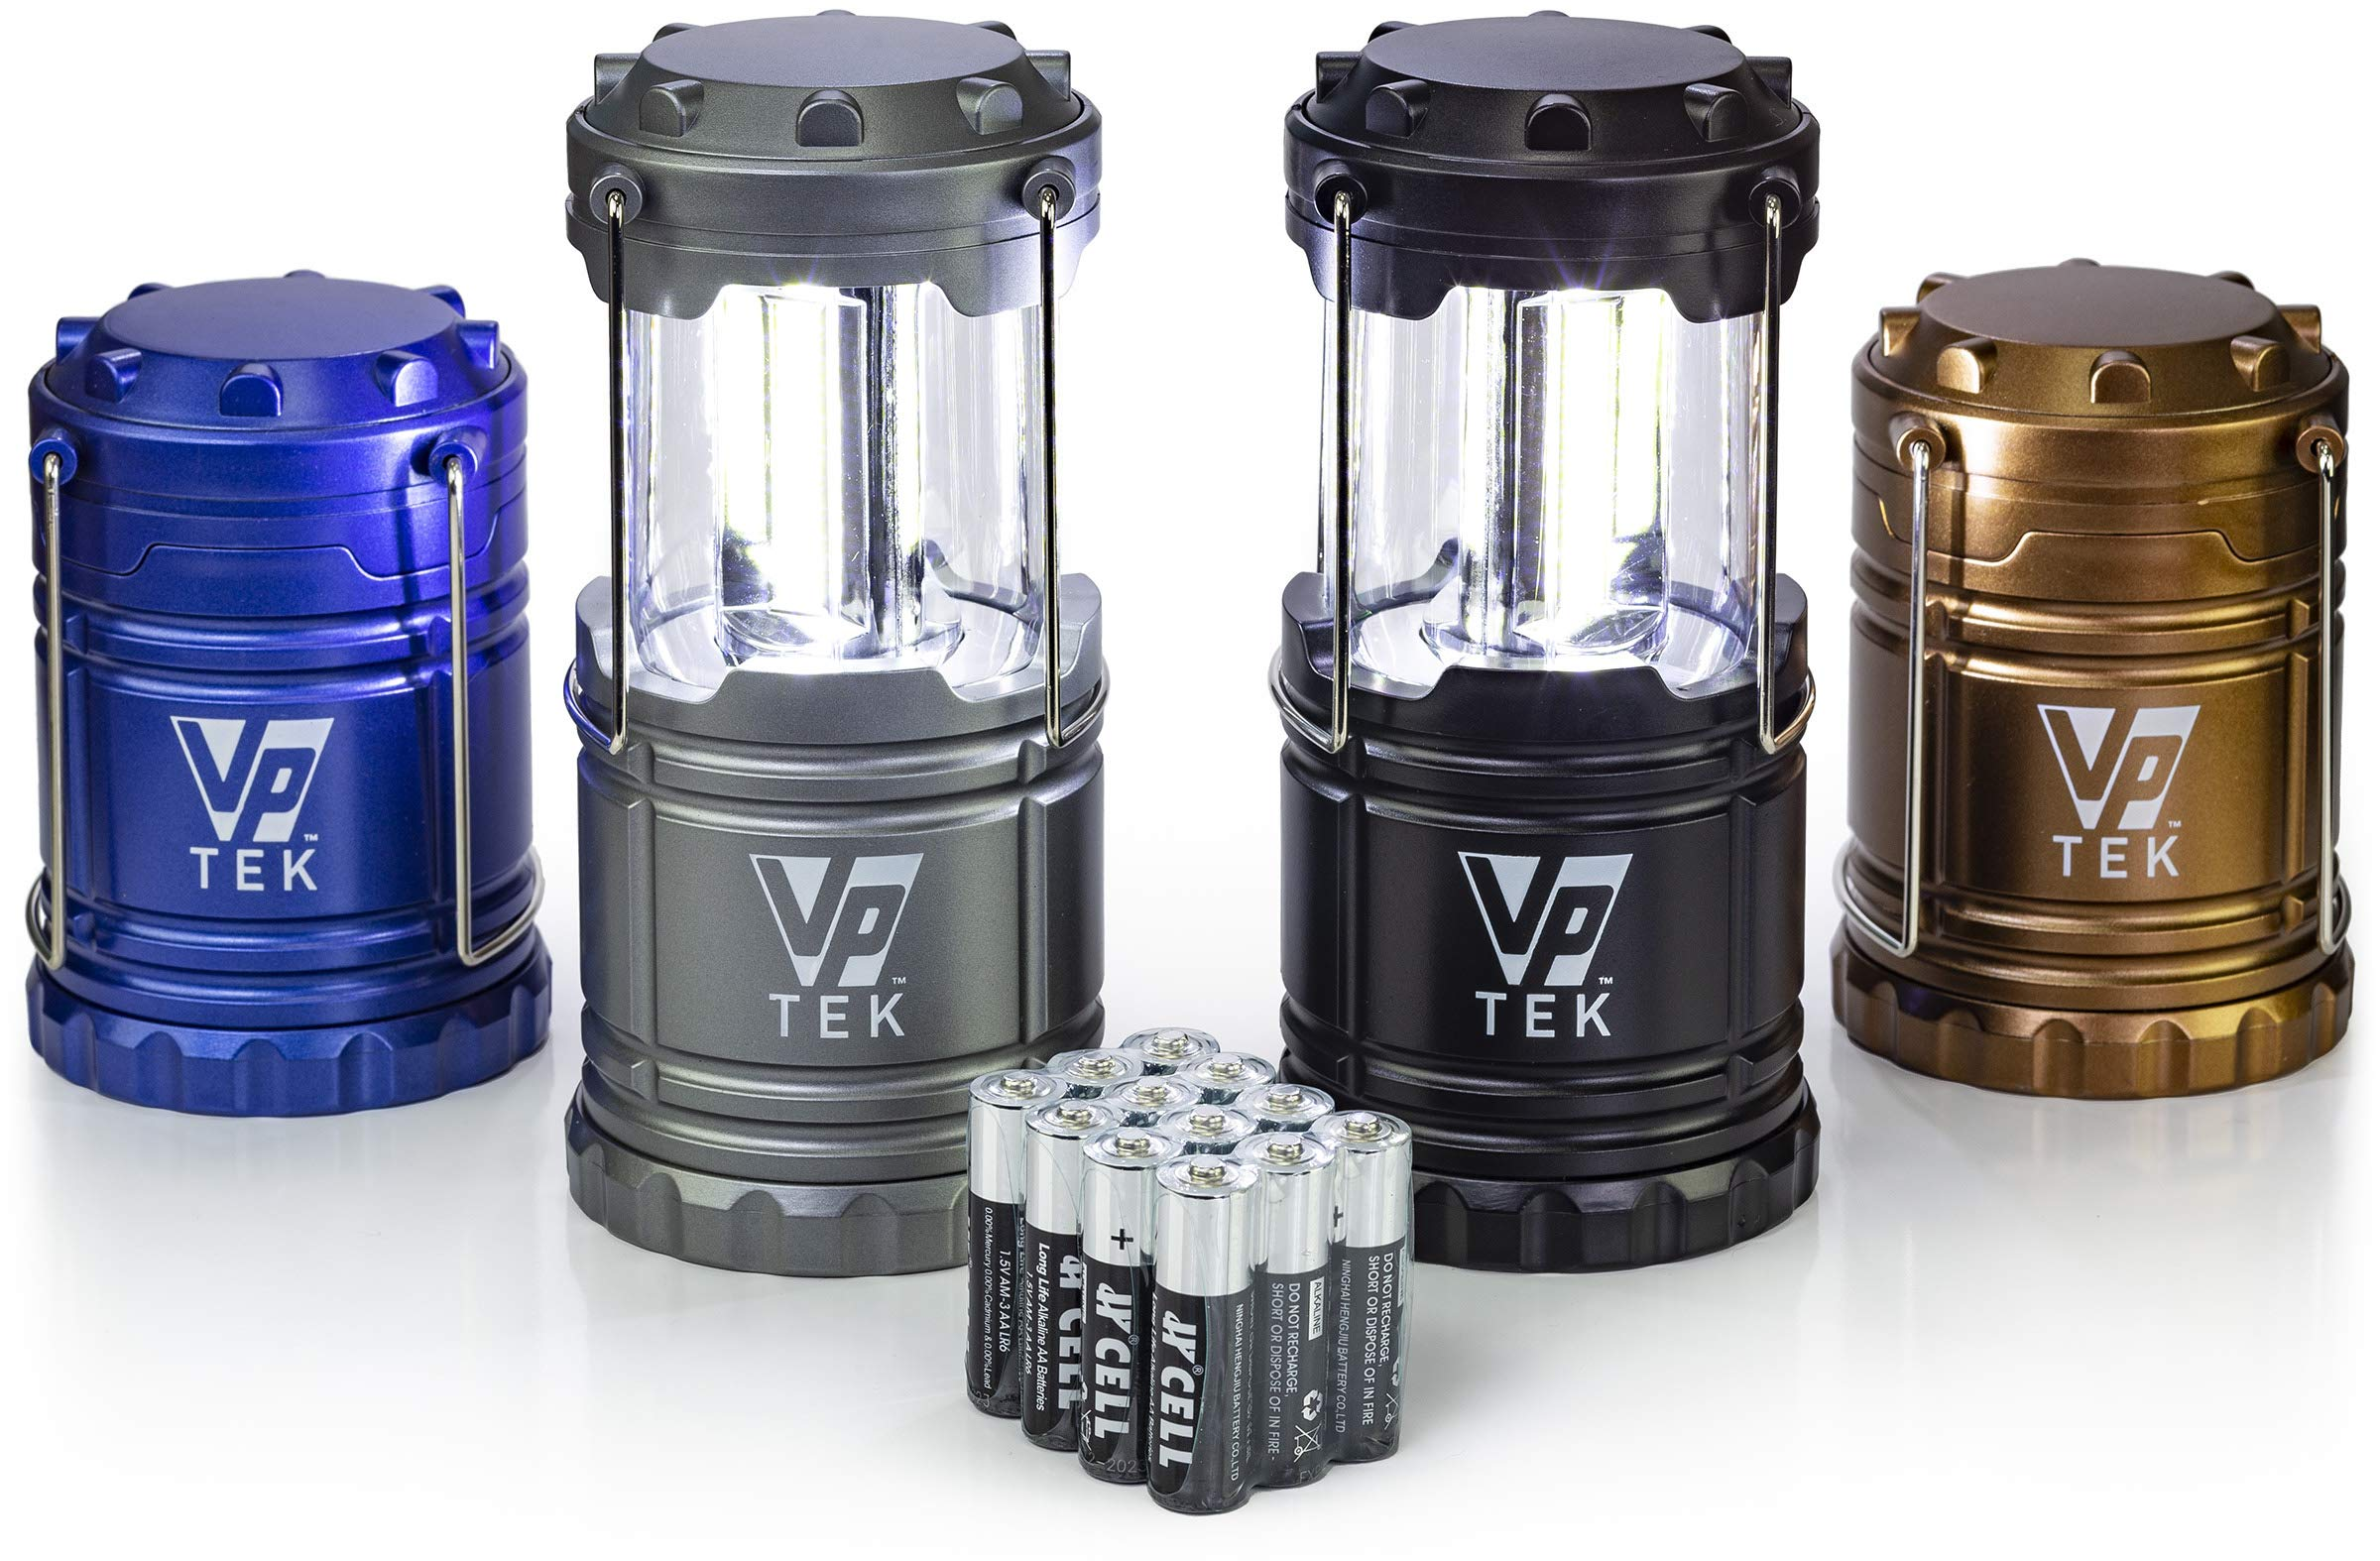 VP TEK Collapsible LED Lantern with Ultra Bright 300 Lumens COB Technology (4 Pack) (Black, Metallic Copper, Cobalt Blue & Metallic Silver) by VP TEK